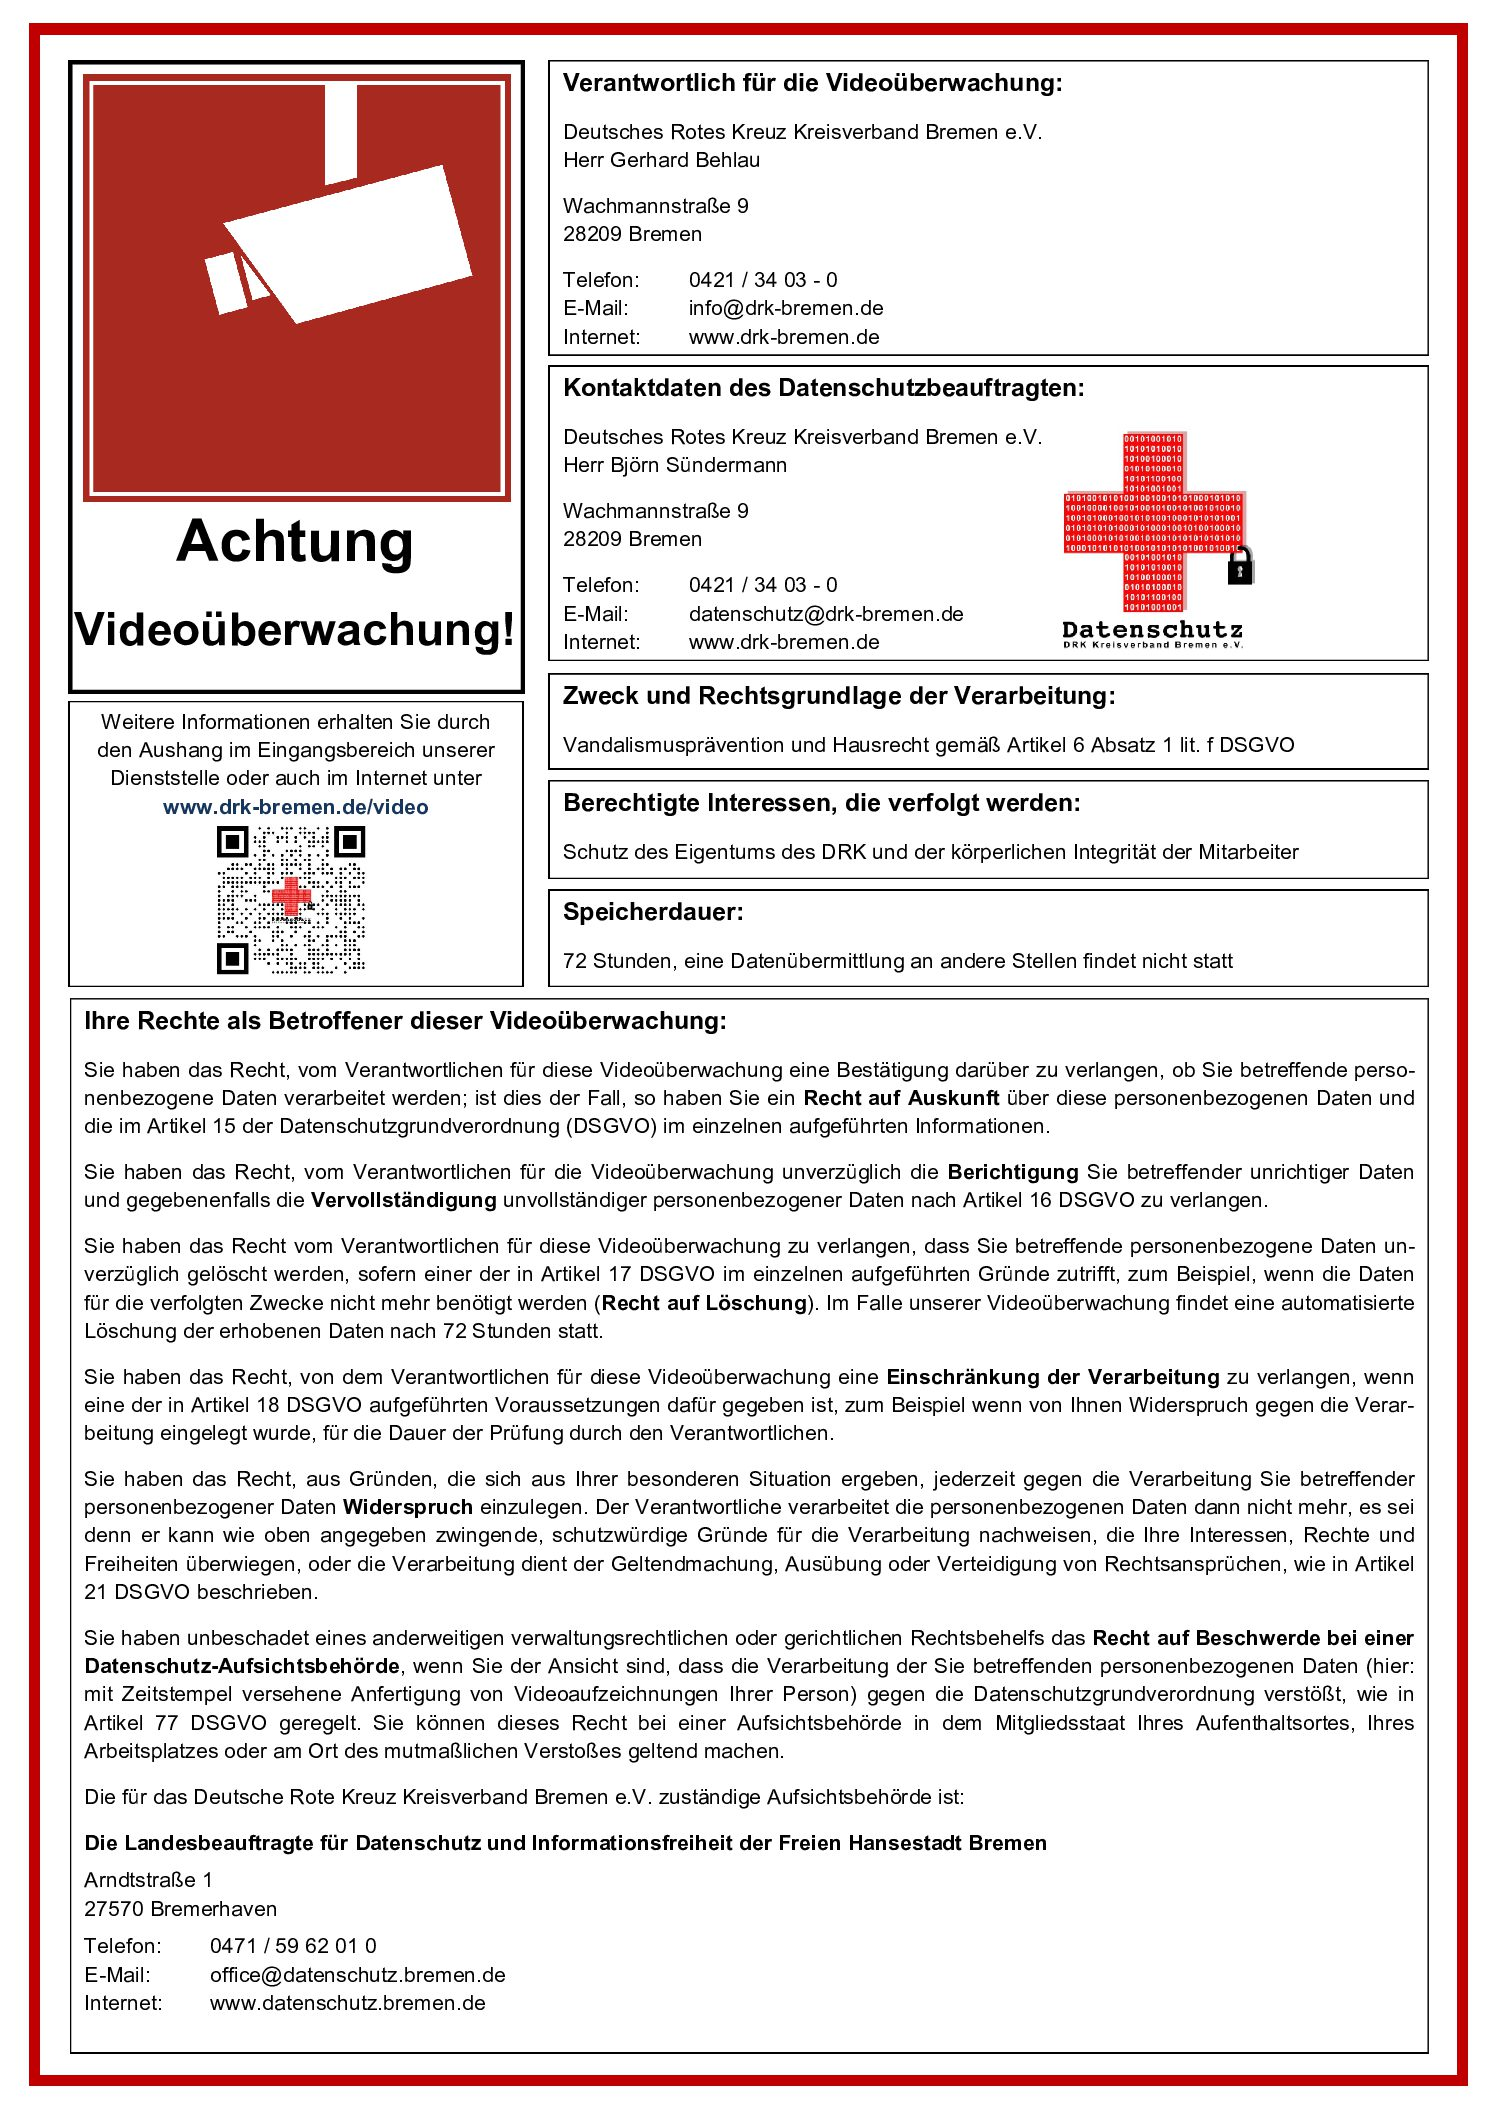 Informationsblatt_Videoueberwachung-pdf Video